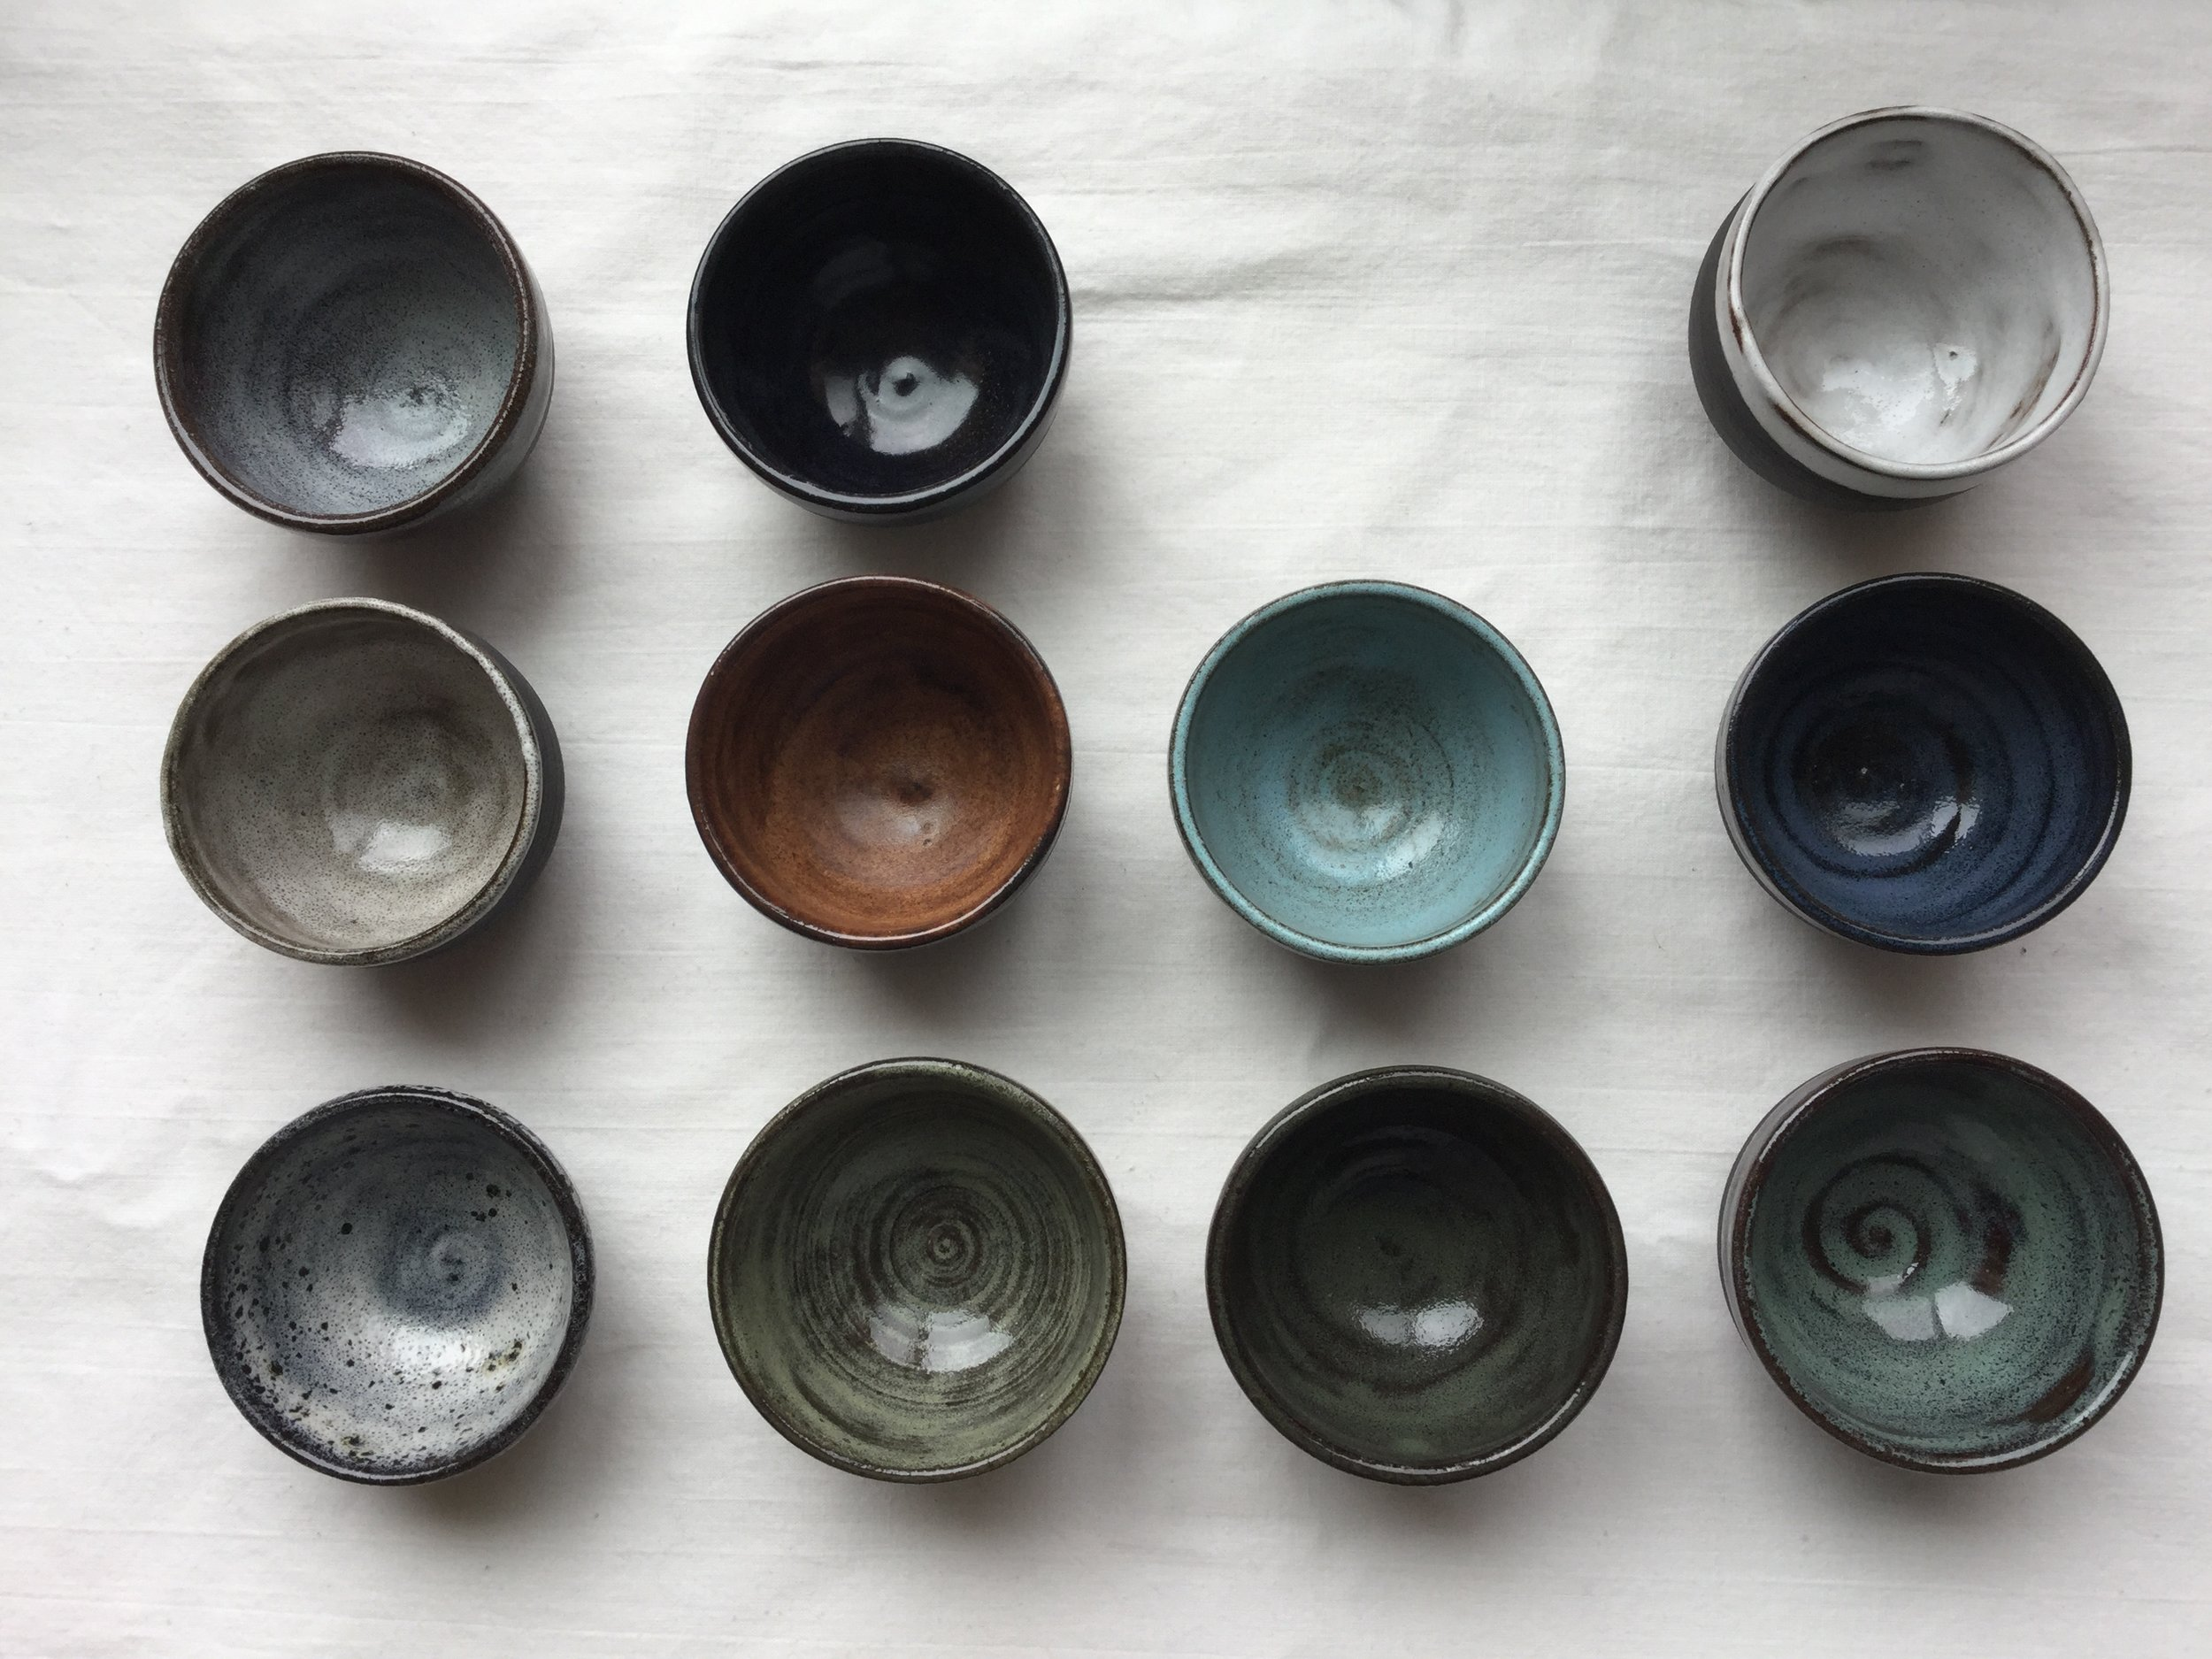 from left to right (on black clay)  Ocean, Black, Snow white  Sugar white, Wood, Powder blue, Denim blue  Midnight ocean, Honeydew mint, Dark green, Blue green